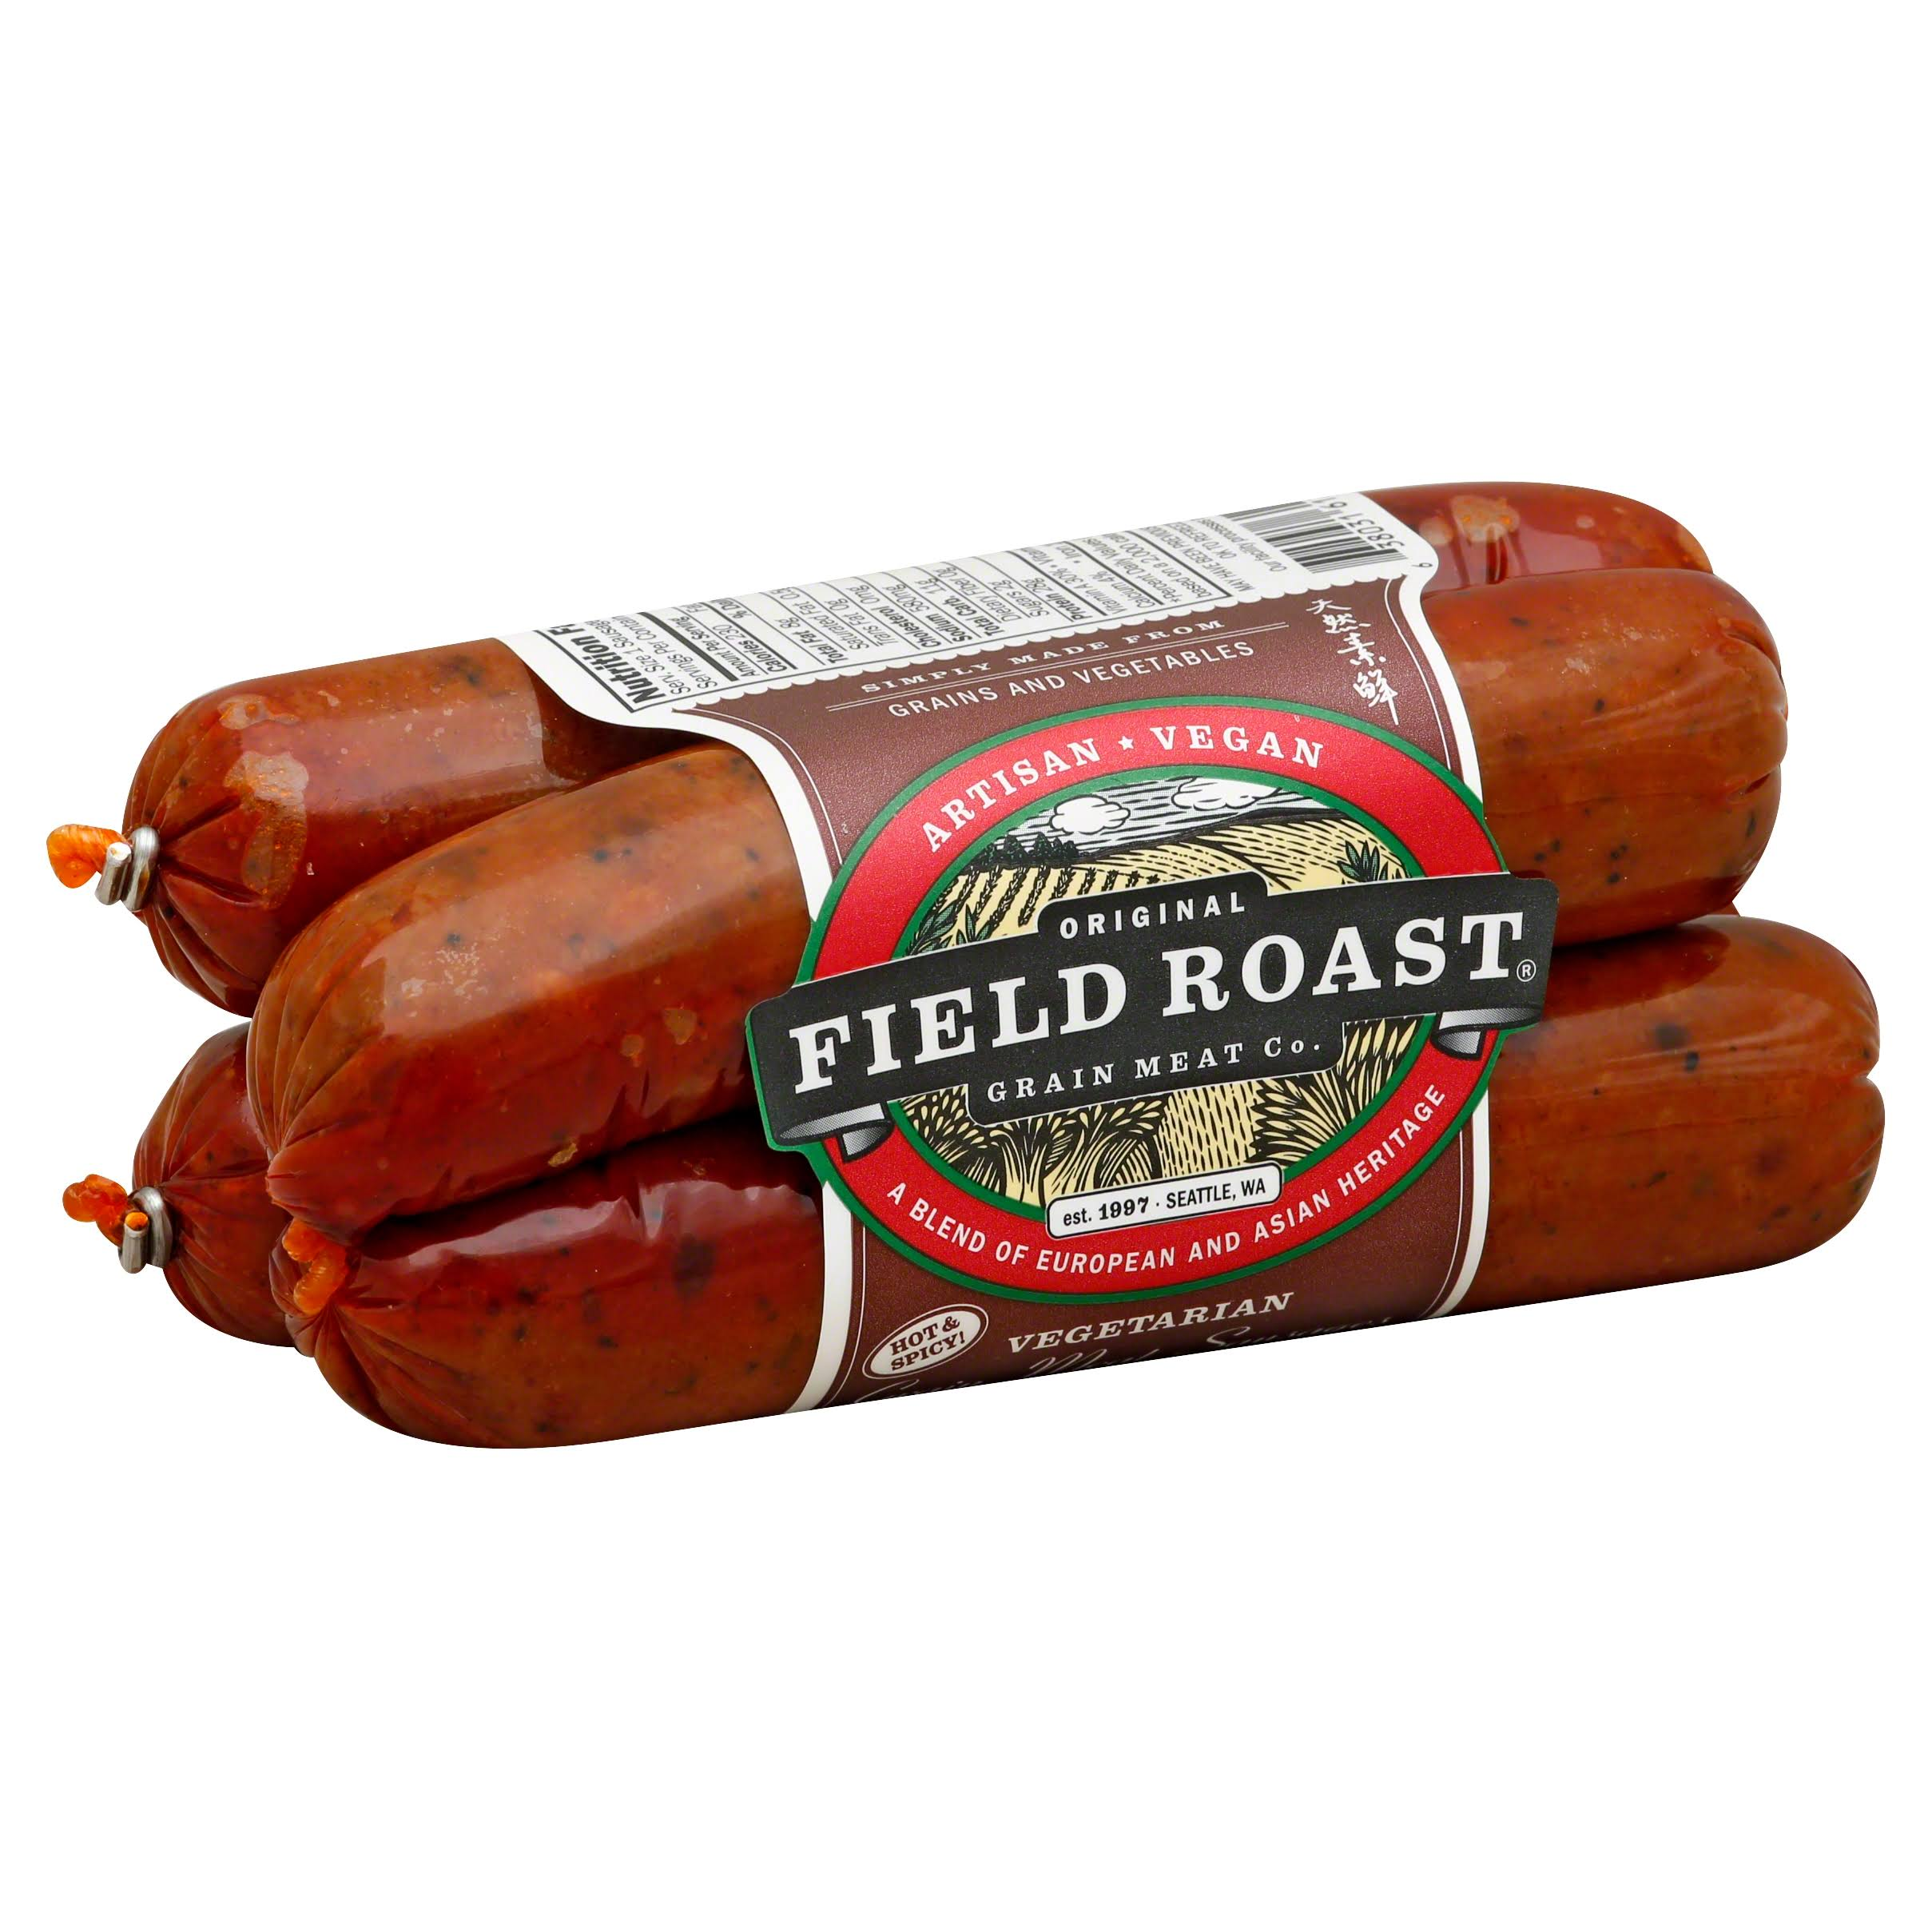 Field Roast Vegetarian Grain Meat Sausages - Mexican Chipotle, 12.95 oz